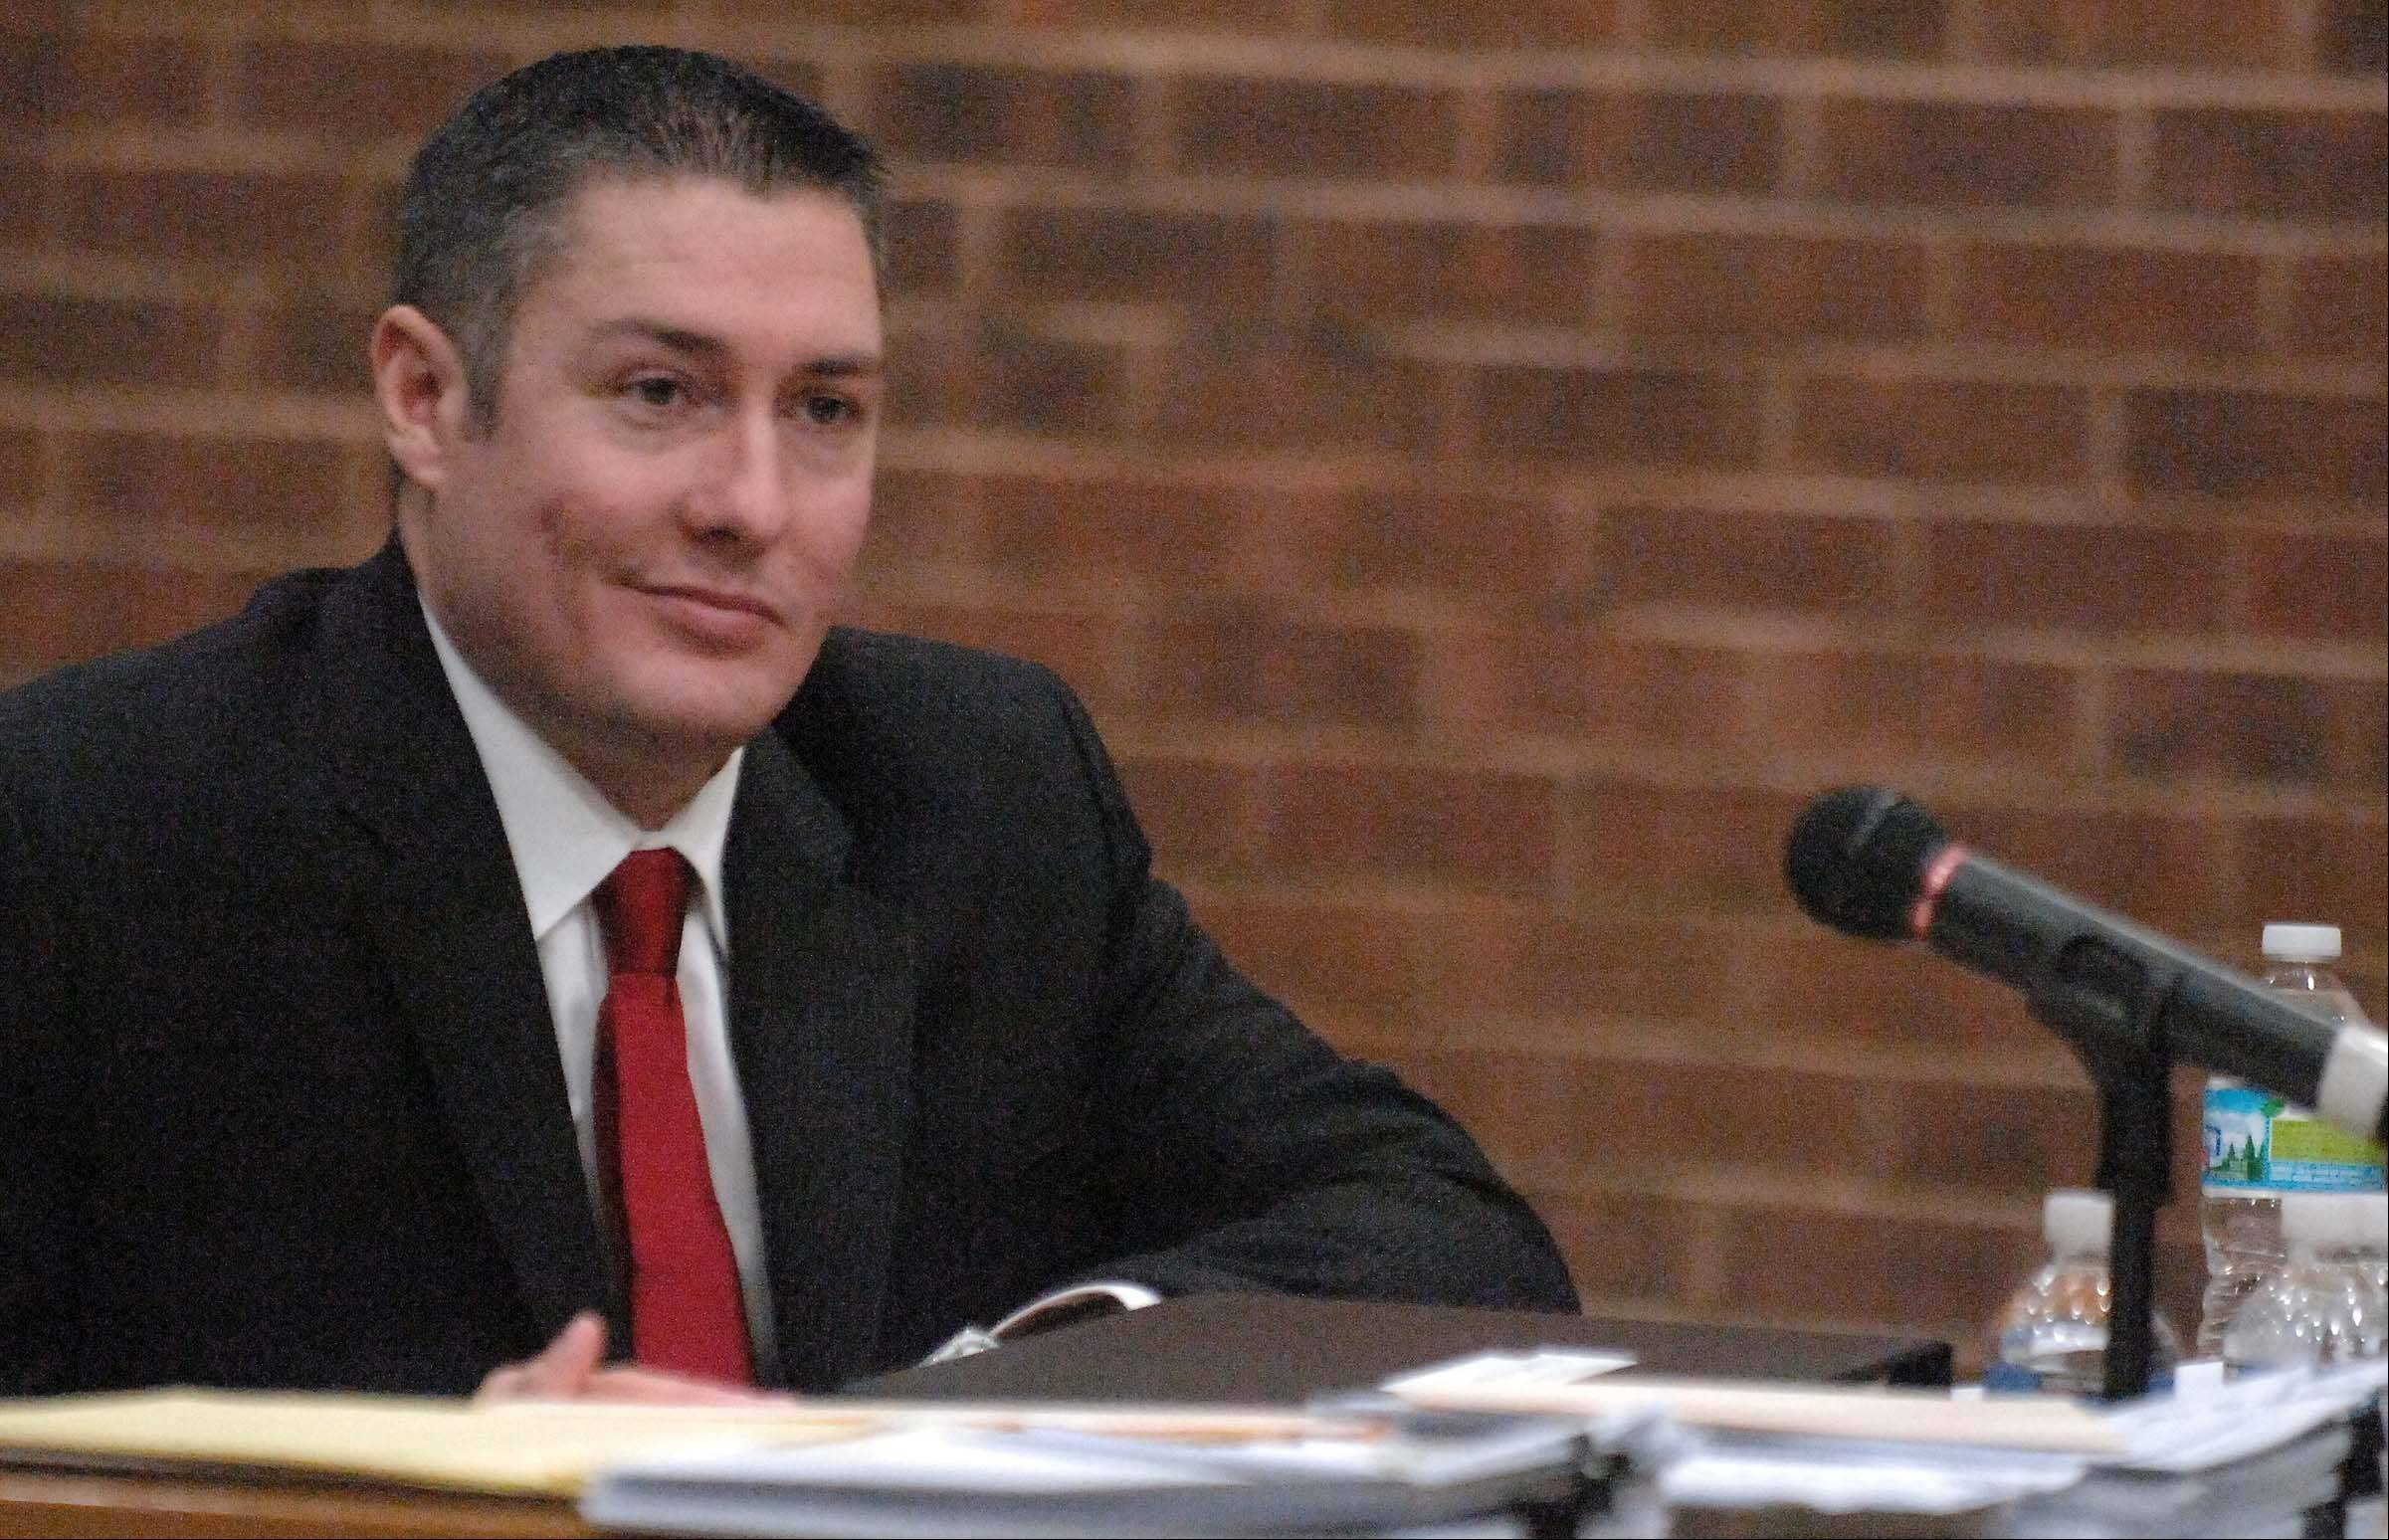 Former Oak Brook police officer Stephen Peterson, son of murder suspect Drew Peterson, attends a hearing before the village board of police and fire commissioners in February 2011.